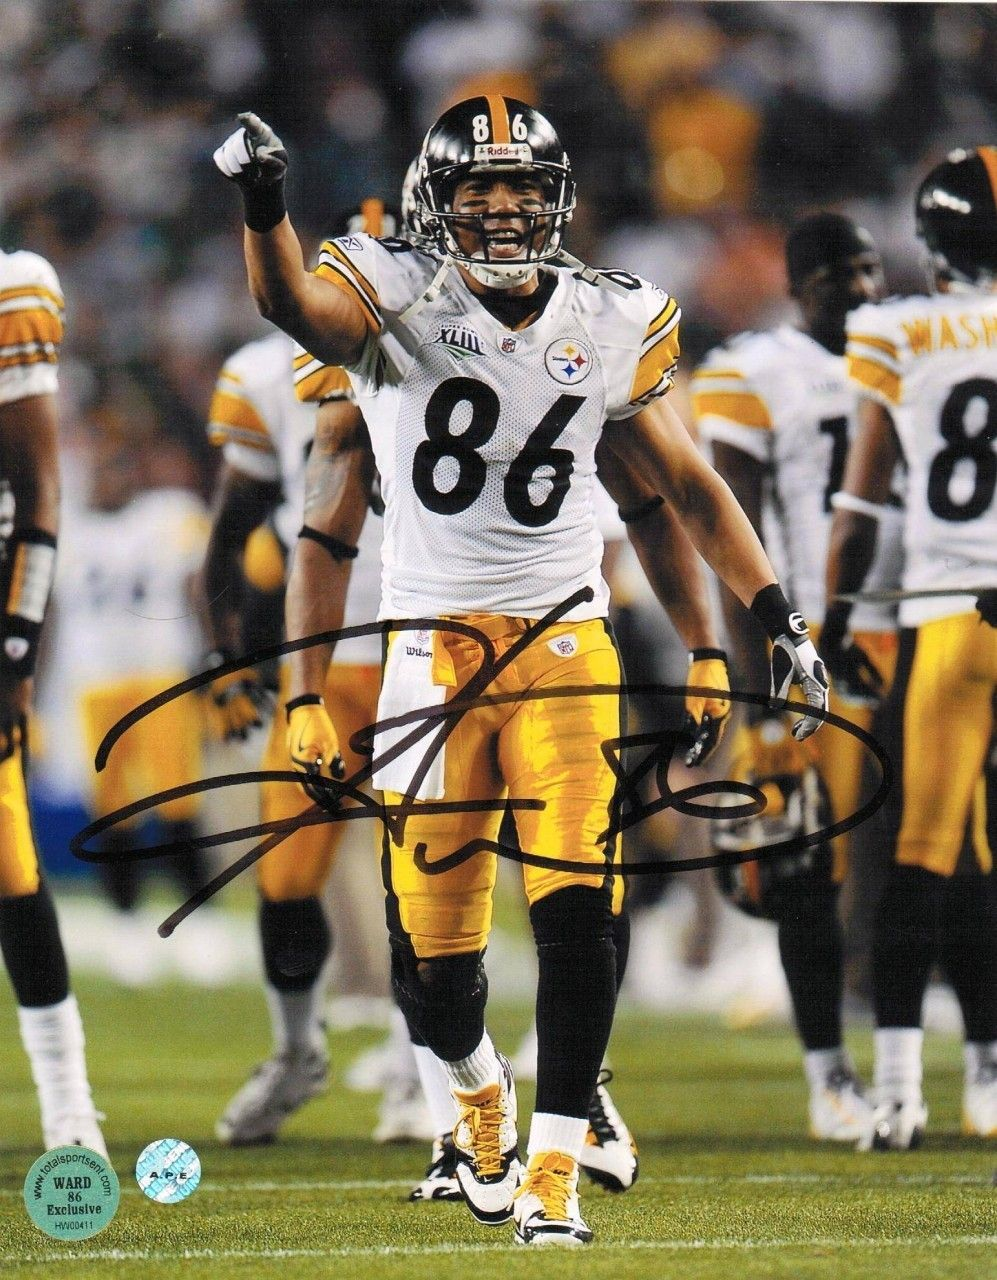 af23567a379 AAA Sports Memorabilia LLC - Hines Ward Pittsburgh Steelers Autographed  8x10 Photo -Pointing-